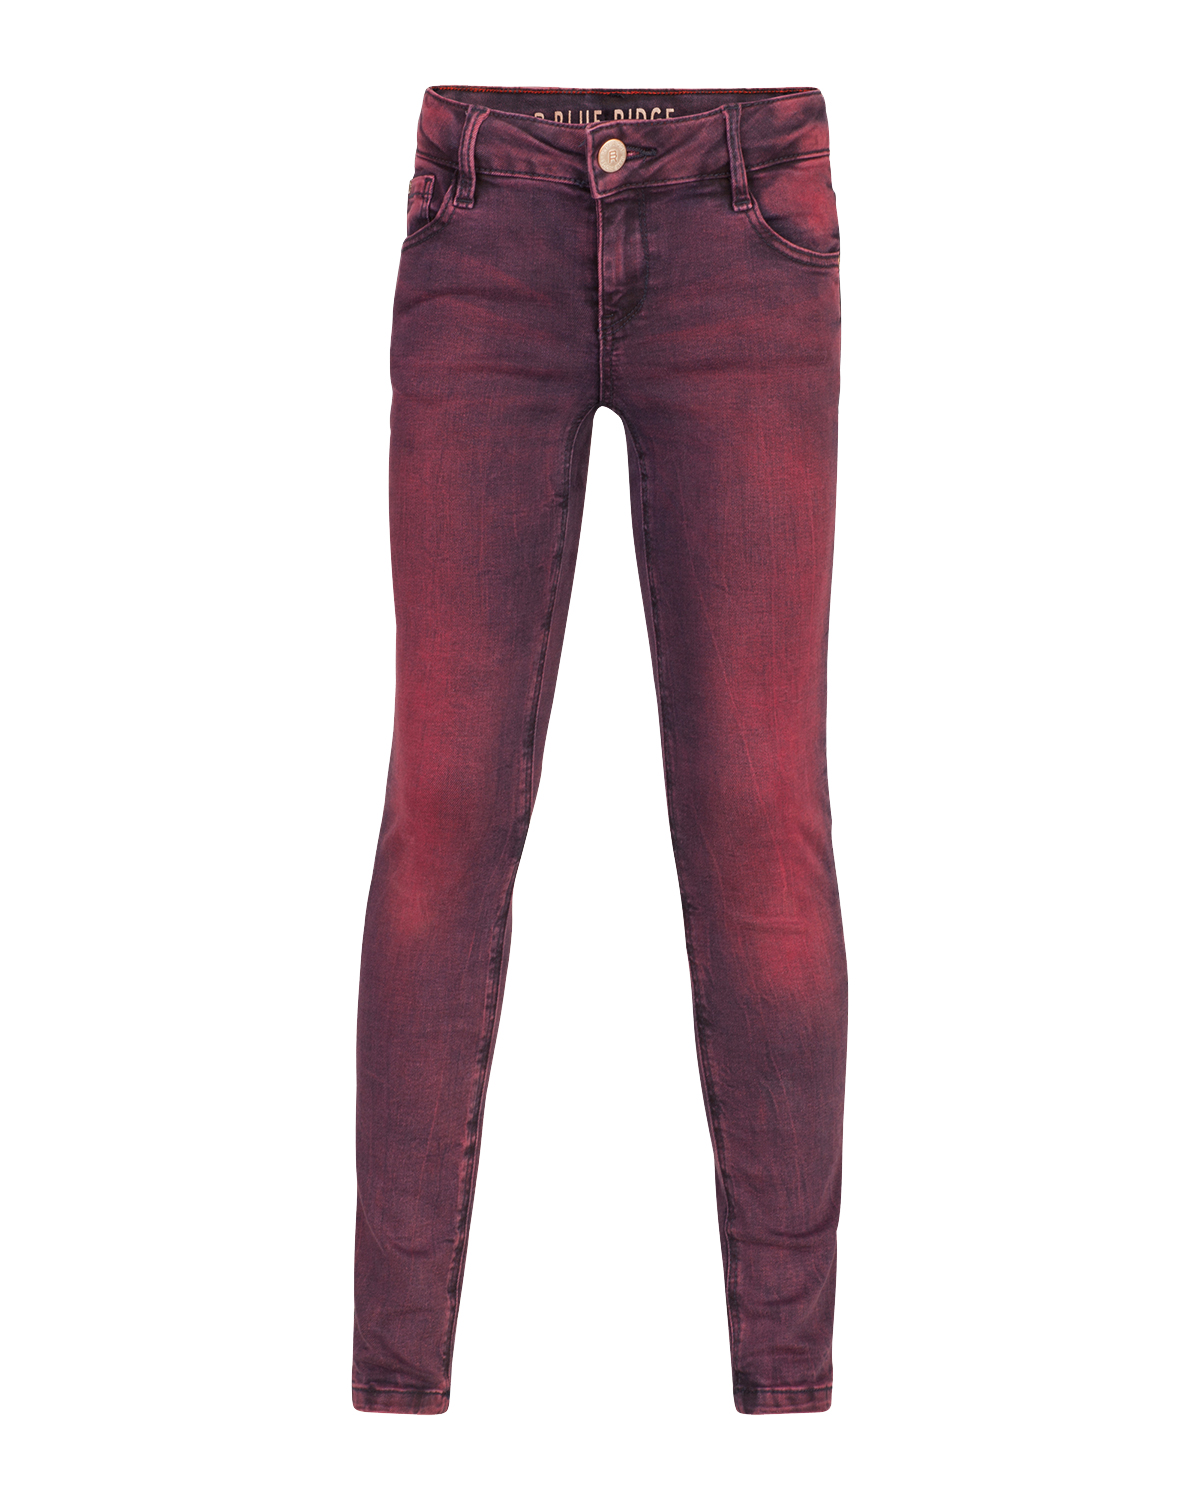 Meisjes super skinny power stretch jeans